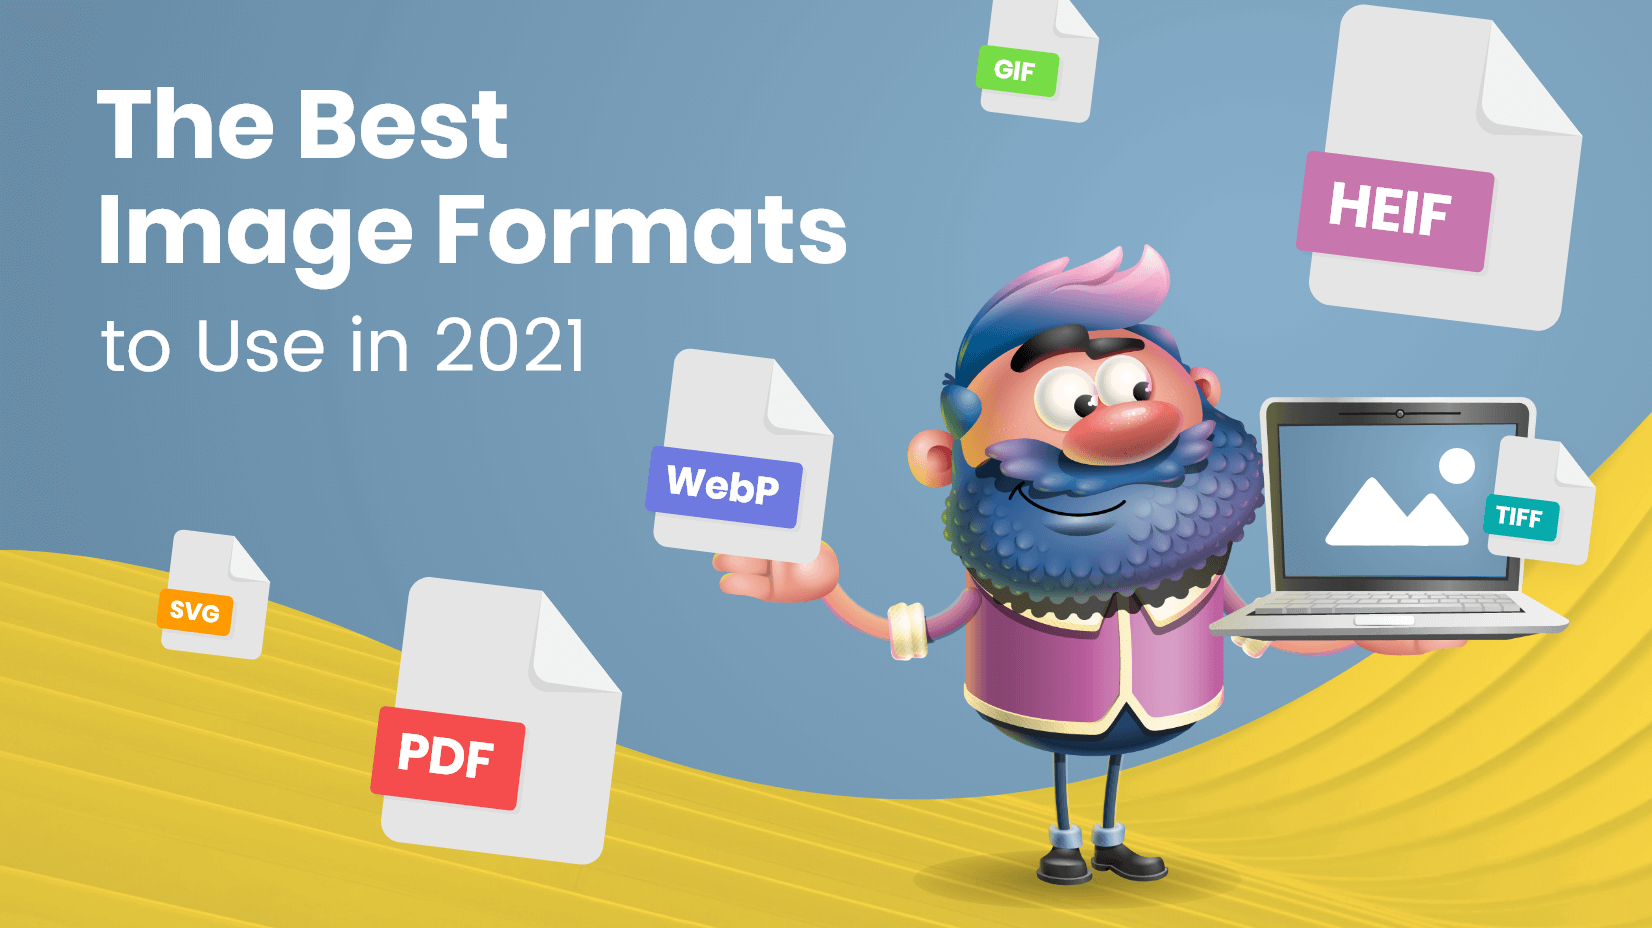 The Best Image Formats to Use in 2021